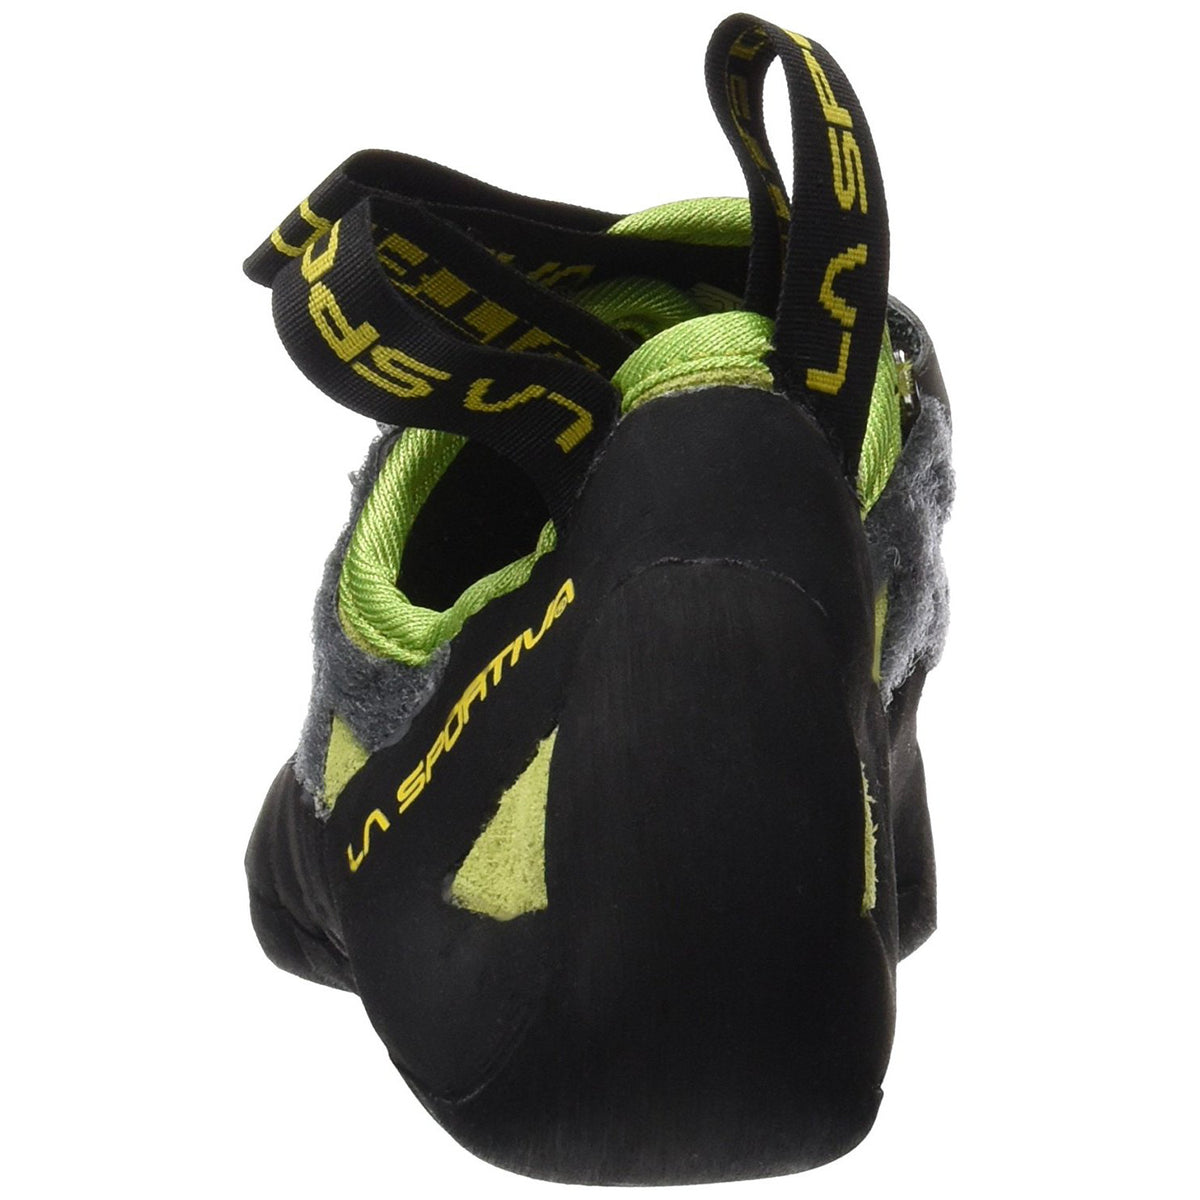 La Sportiva Tarantula climbing shoe, view from the rear showing heel design